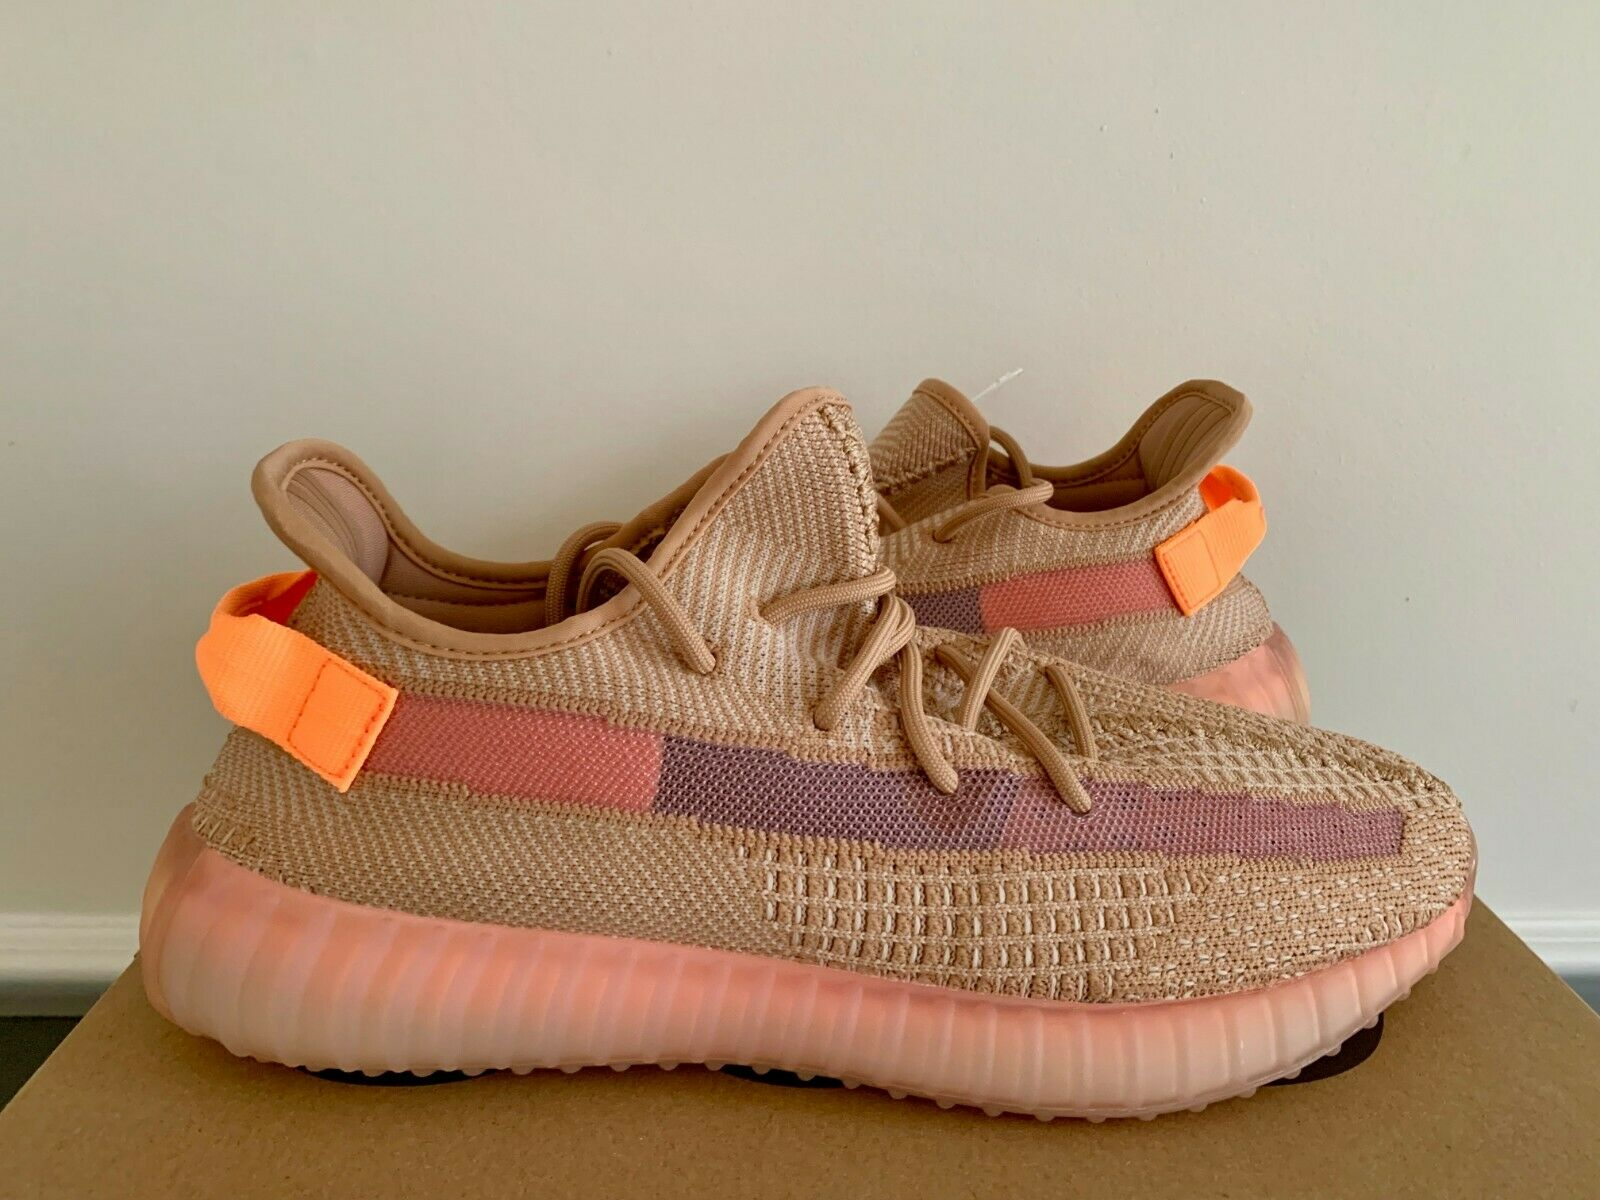 DS BRAND NEW ADIDAS YEEZY BOOST 350 V2 500 CLAY HYPERSPACE TRFRM EG7490 USA